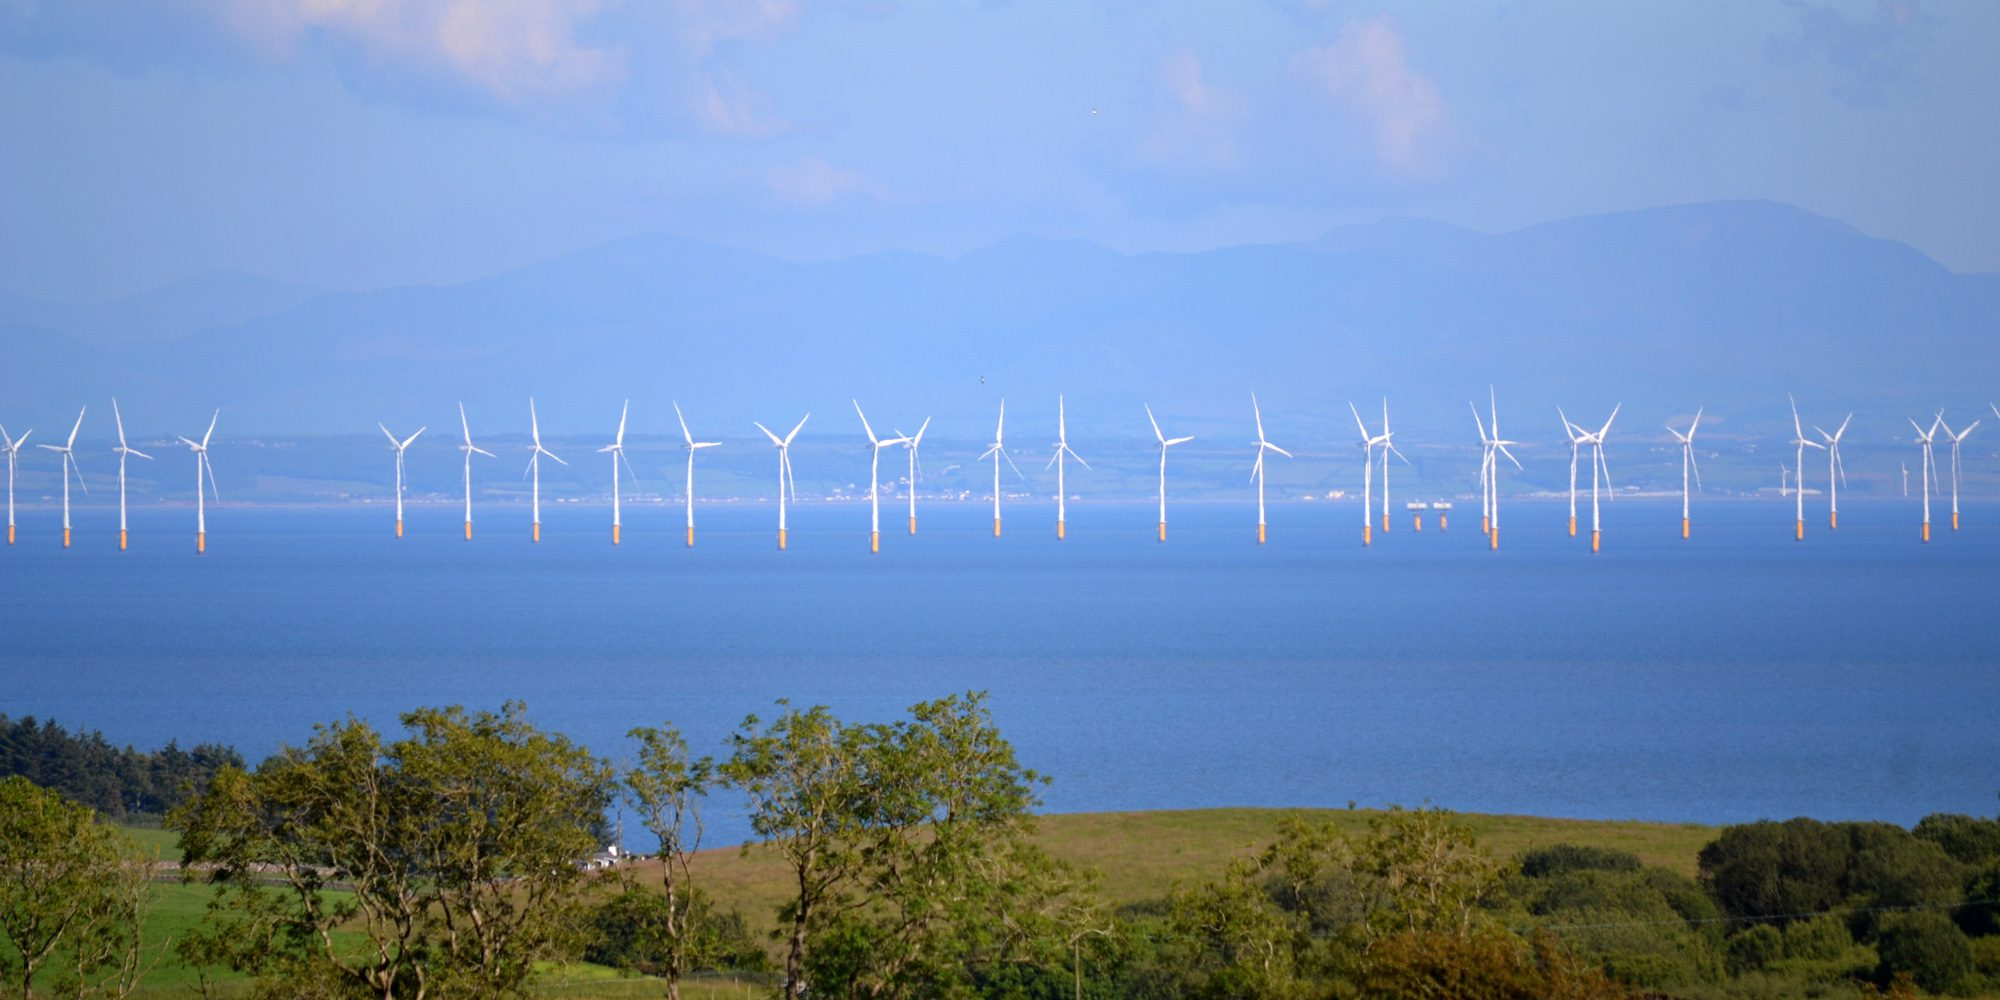 EGEB: UK wind drives electricity, Enel renewables, solar in Spain and Zambia, more